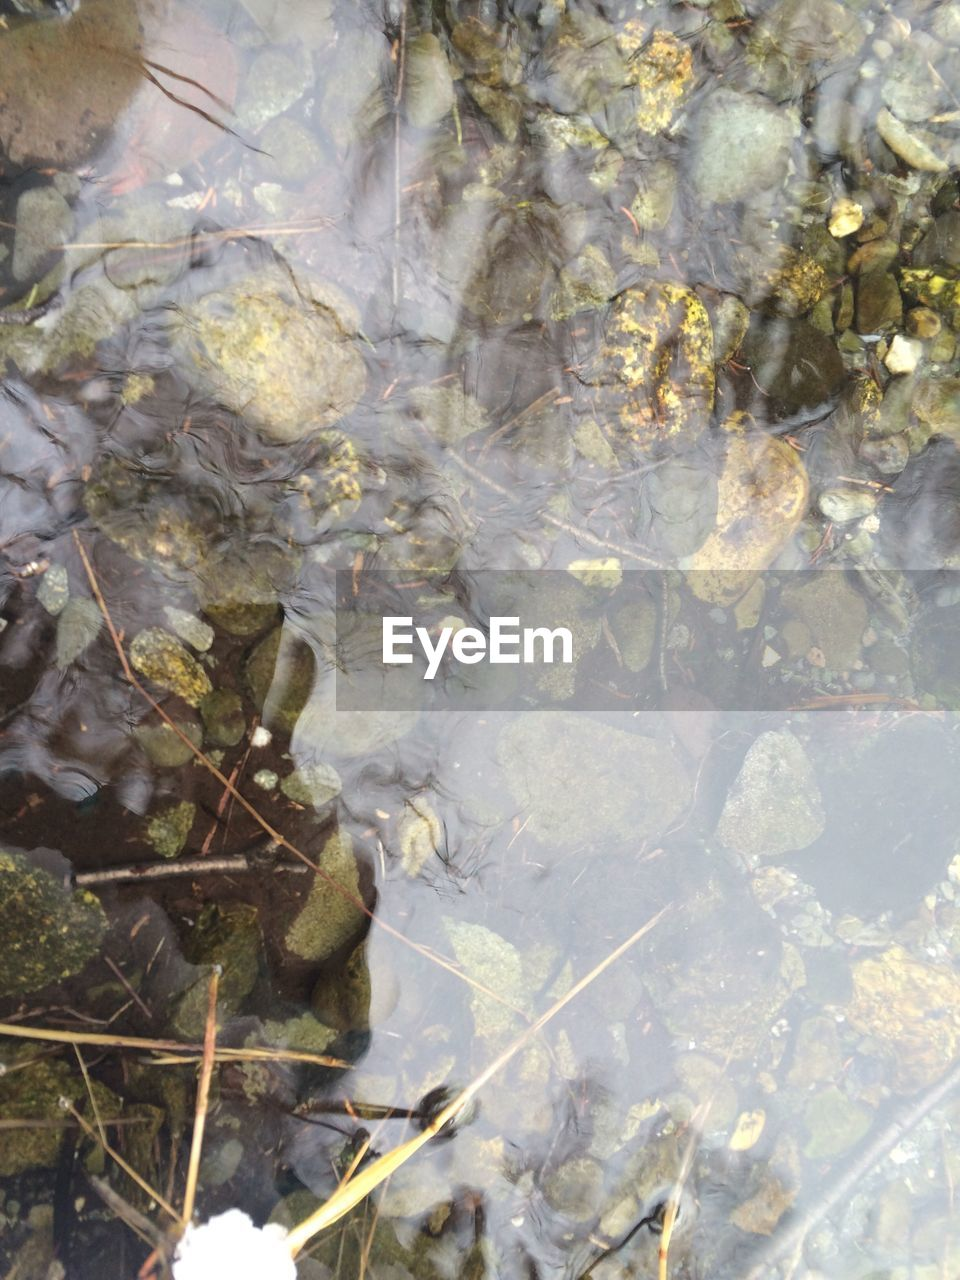 no people, full frame, nature, day, close-up, outdoors, water, freshness